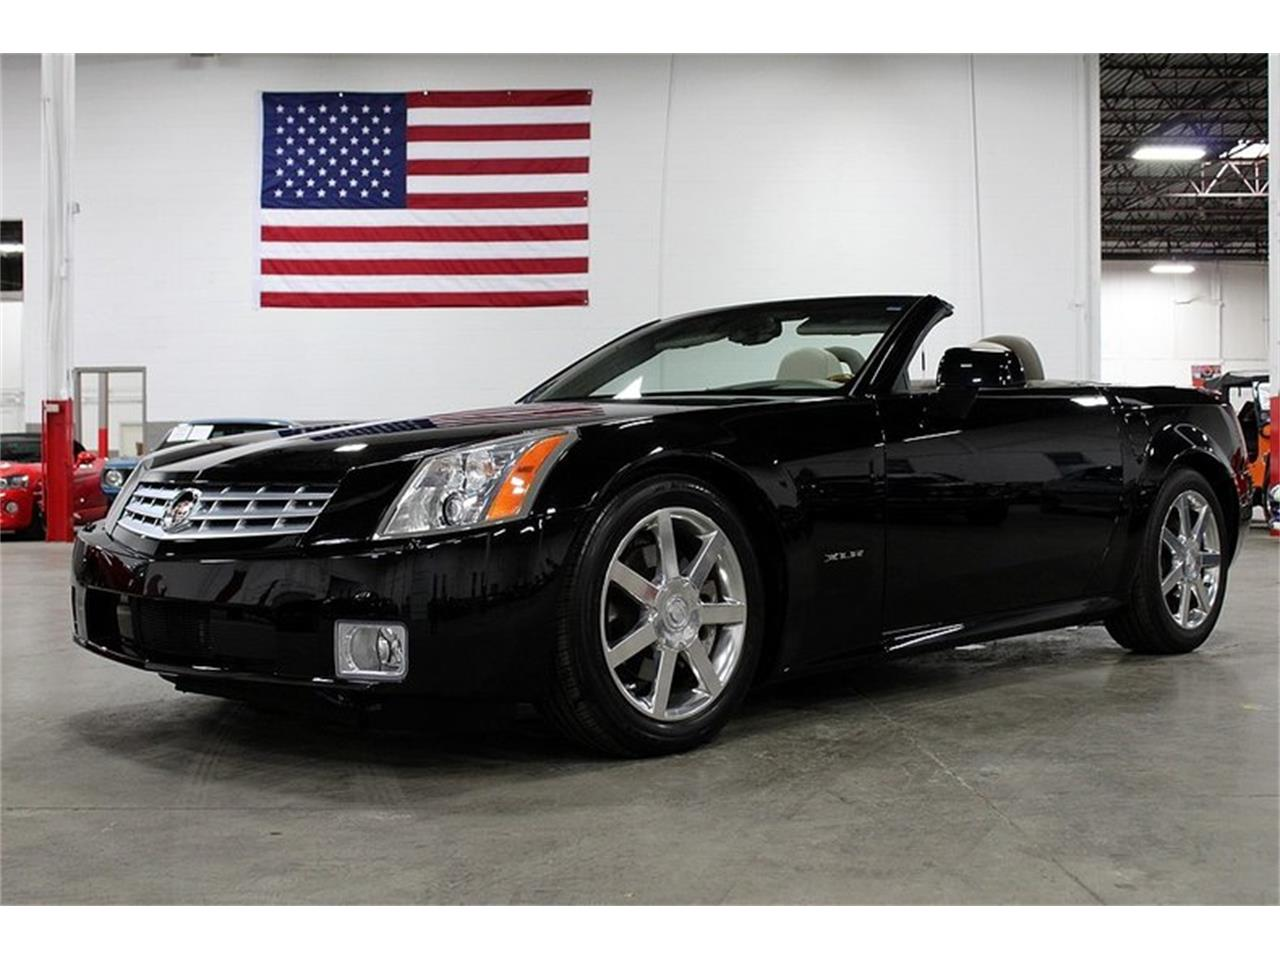 2004 Cadillac XLR for sale in Kentwood, MI – photo 97